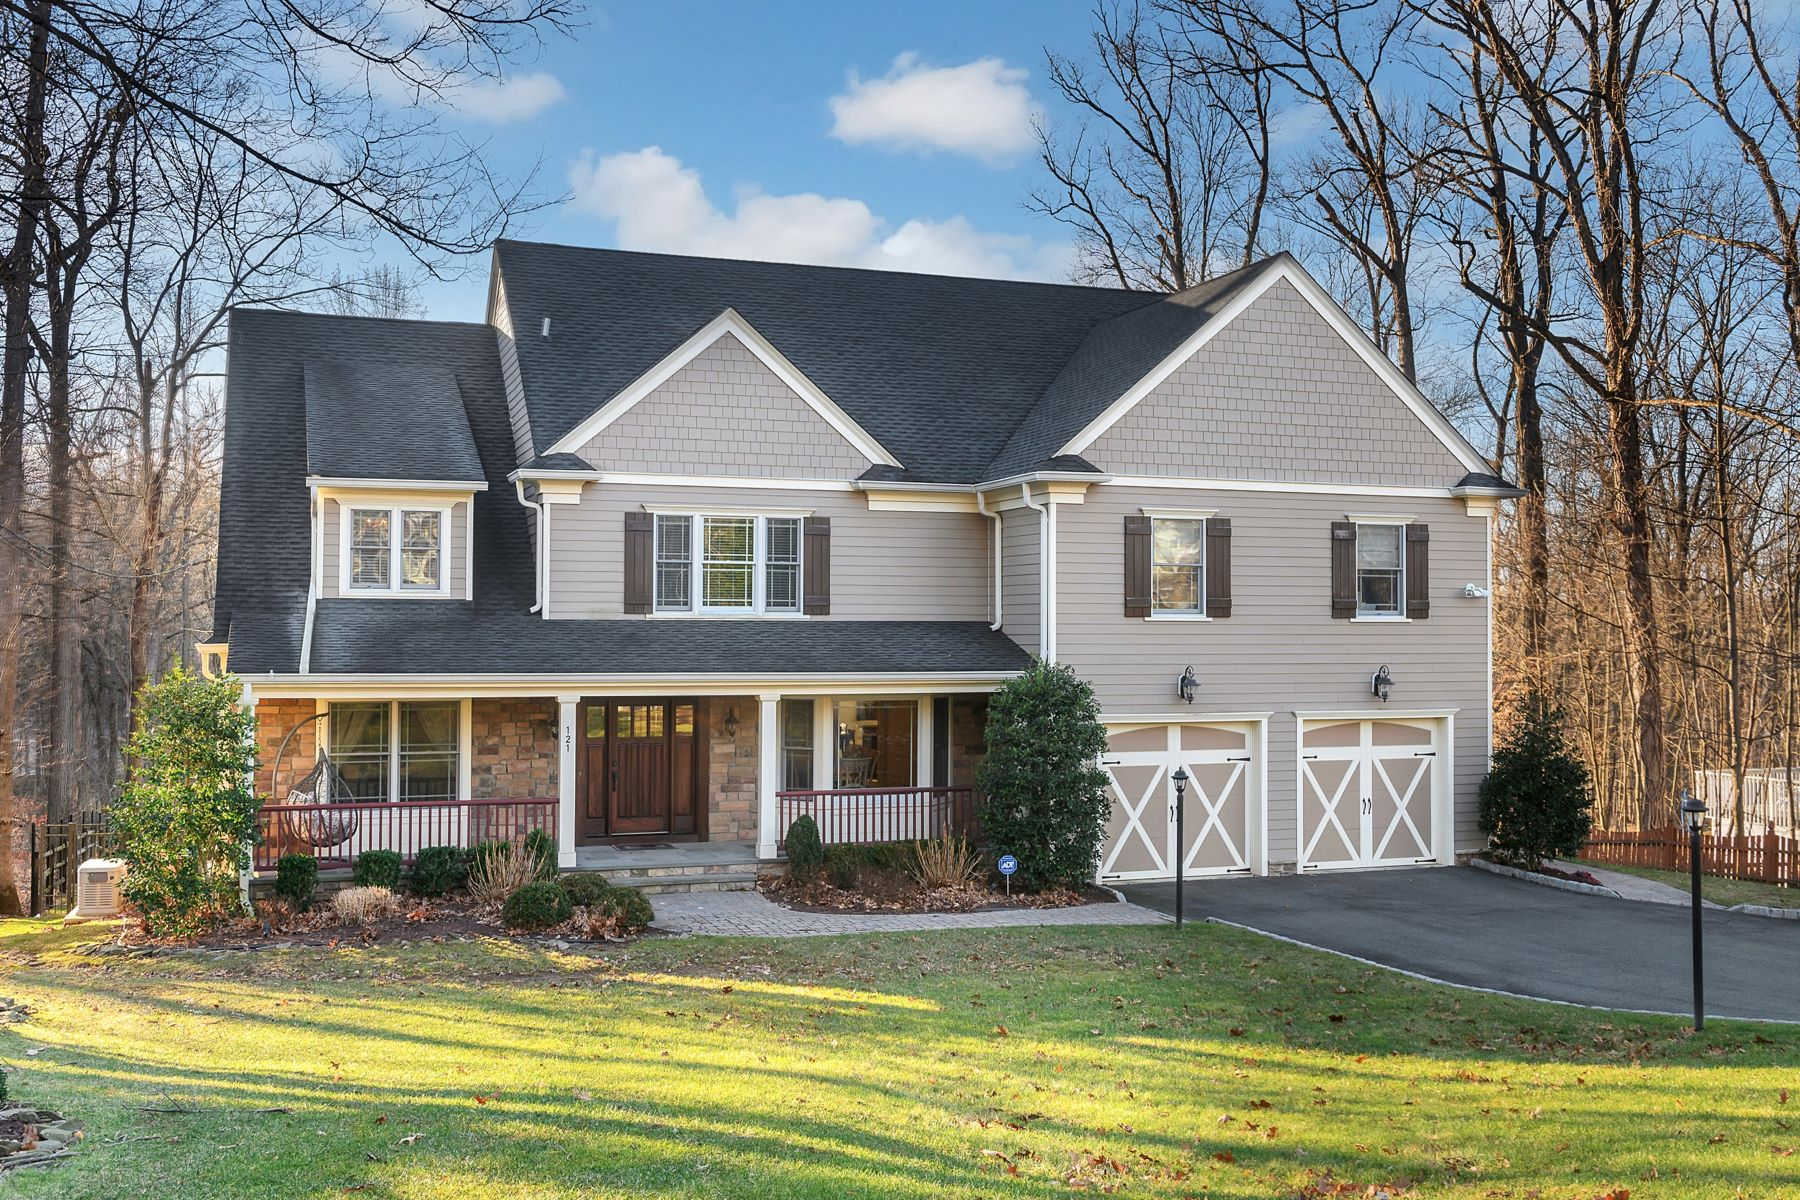 Single Family Homes for Sale at Elegant and Sophisticated Custom Colonial 121 Dogwood Lane, Berkeley Heights, New Jersey 07922 United States